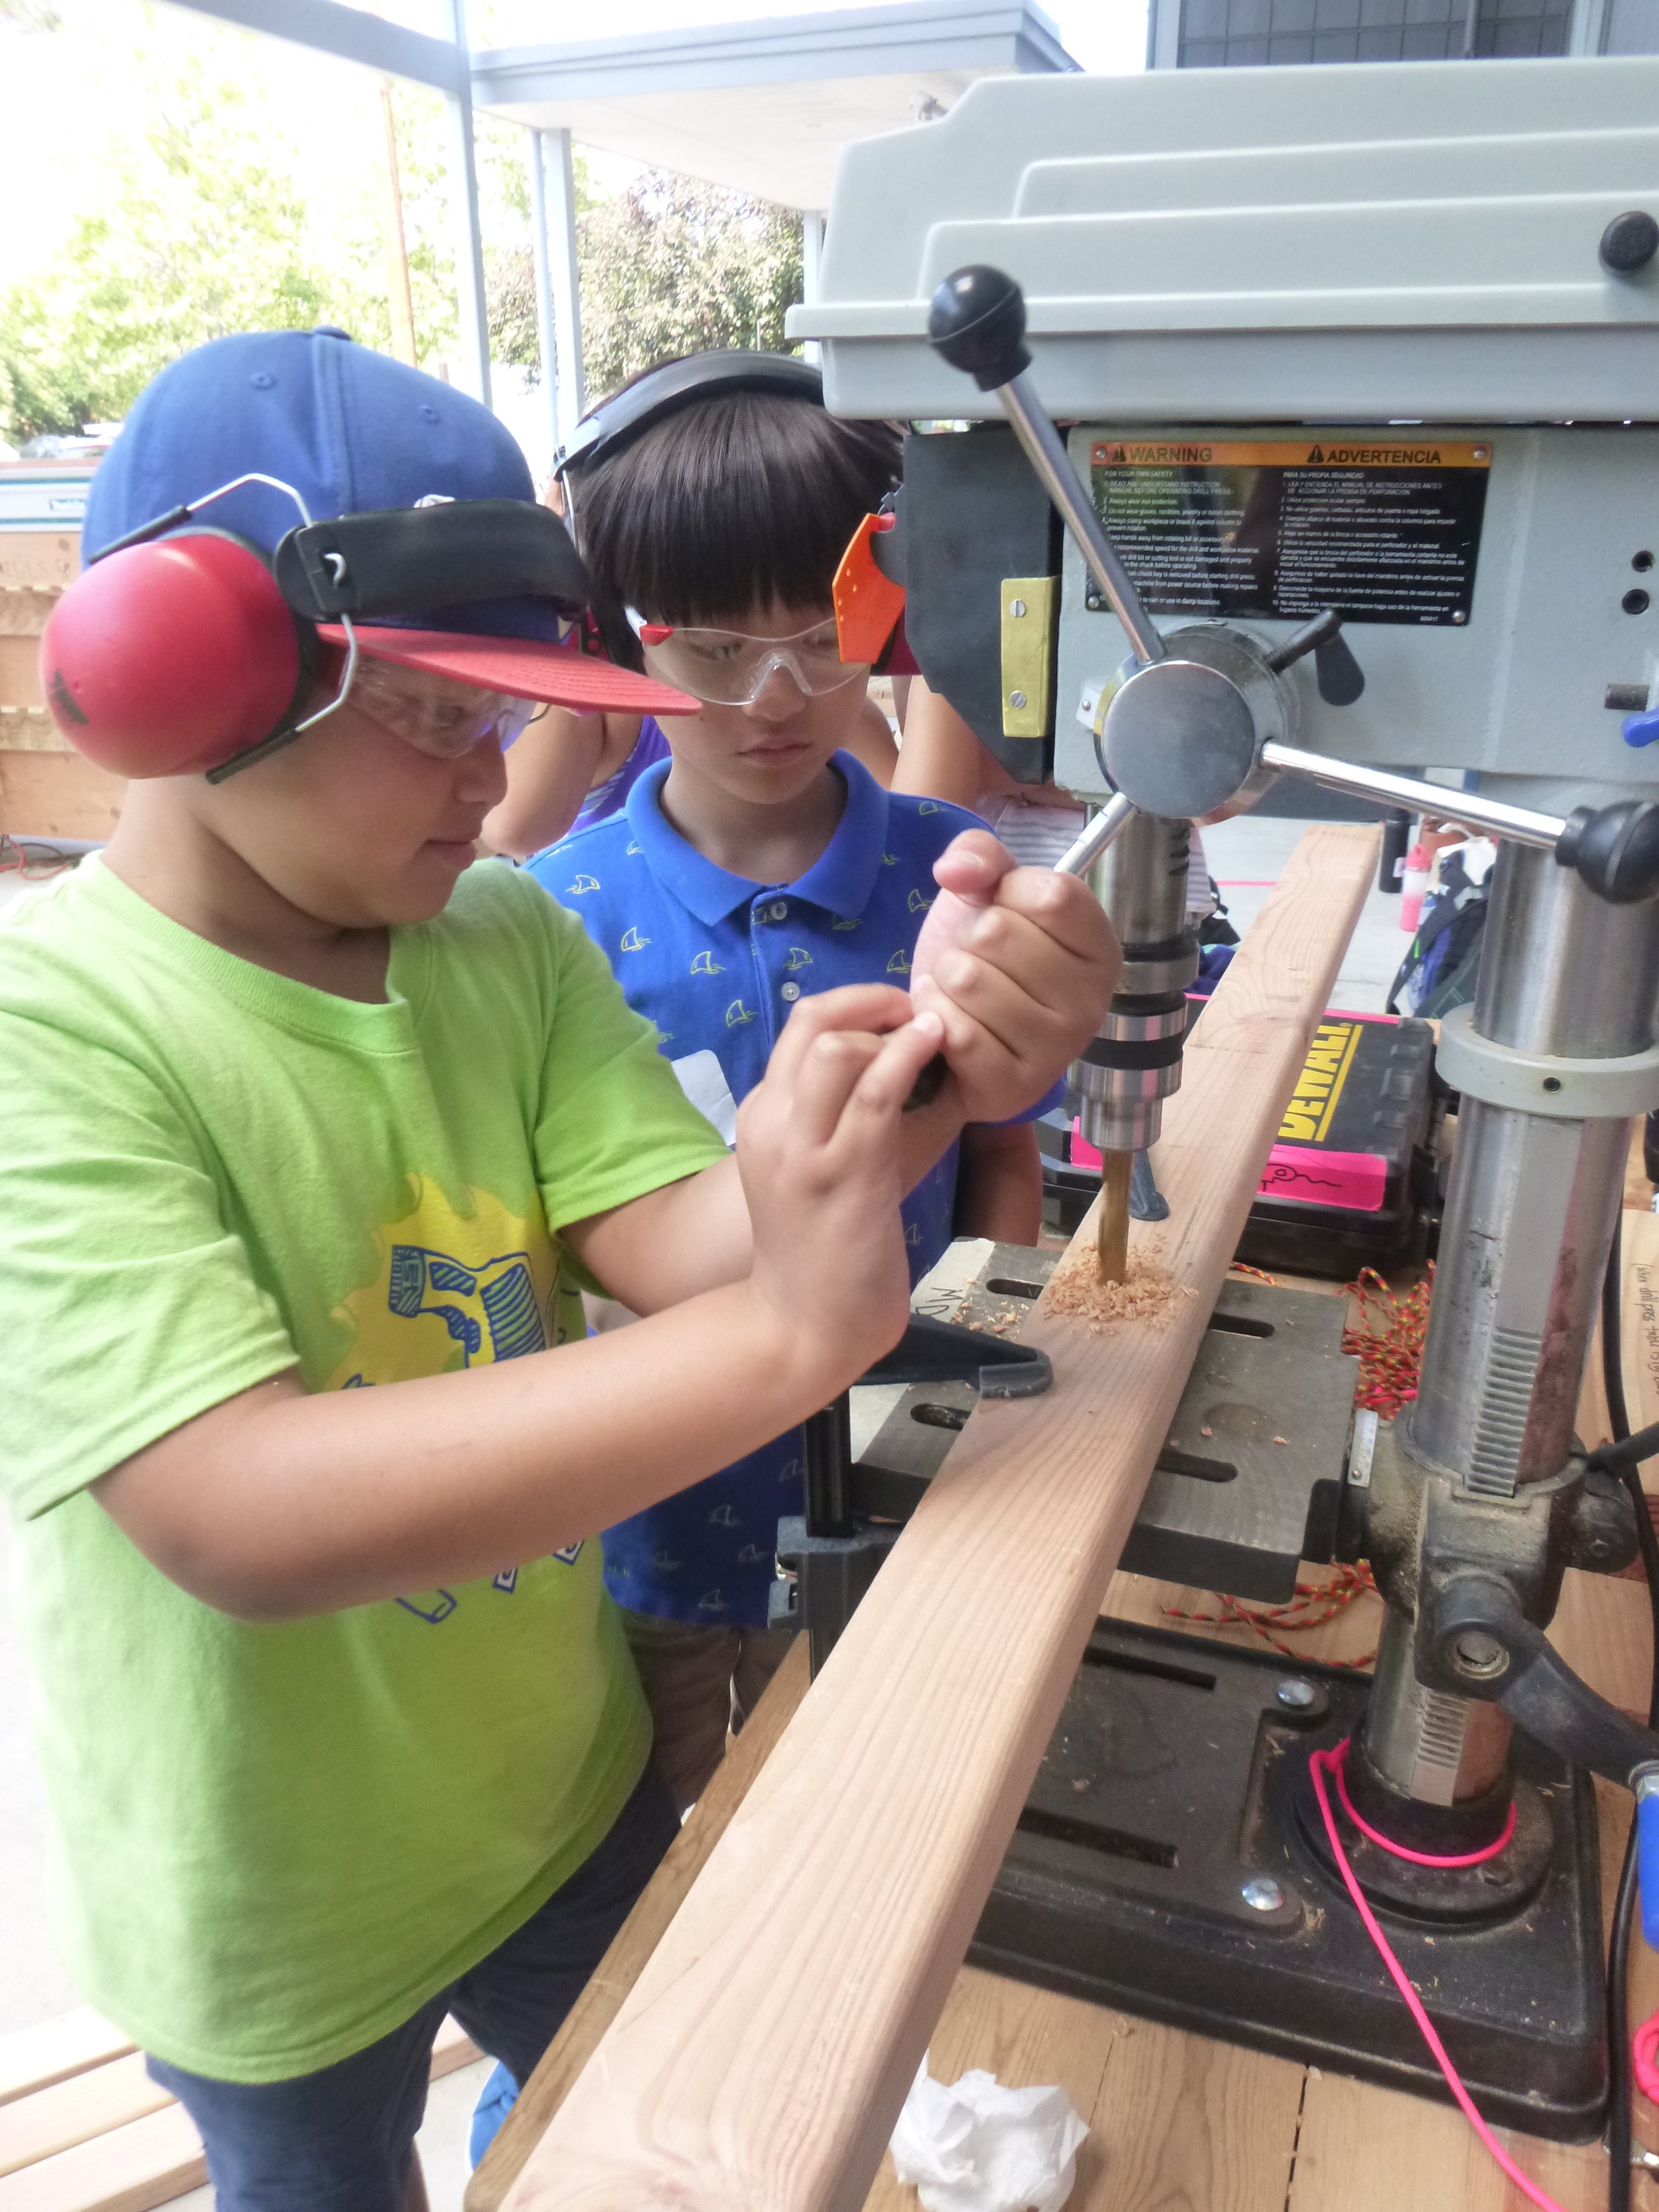 Taelon and Jacob learn how to use a new tool - the drill press.